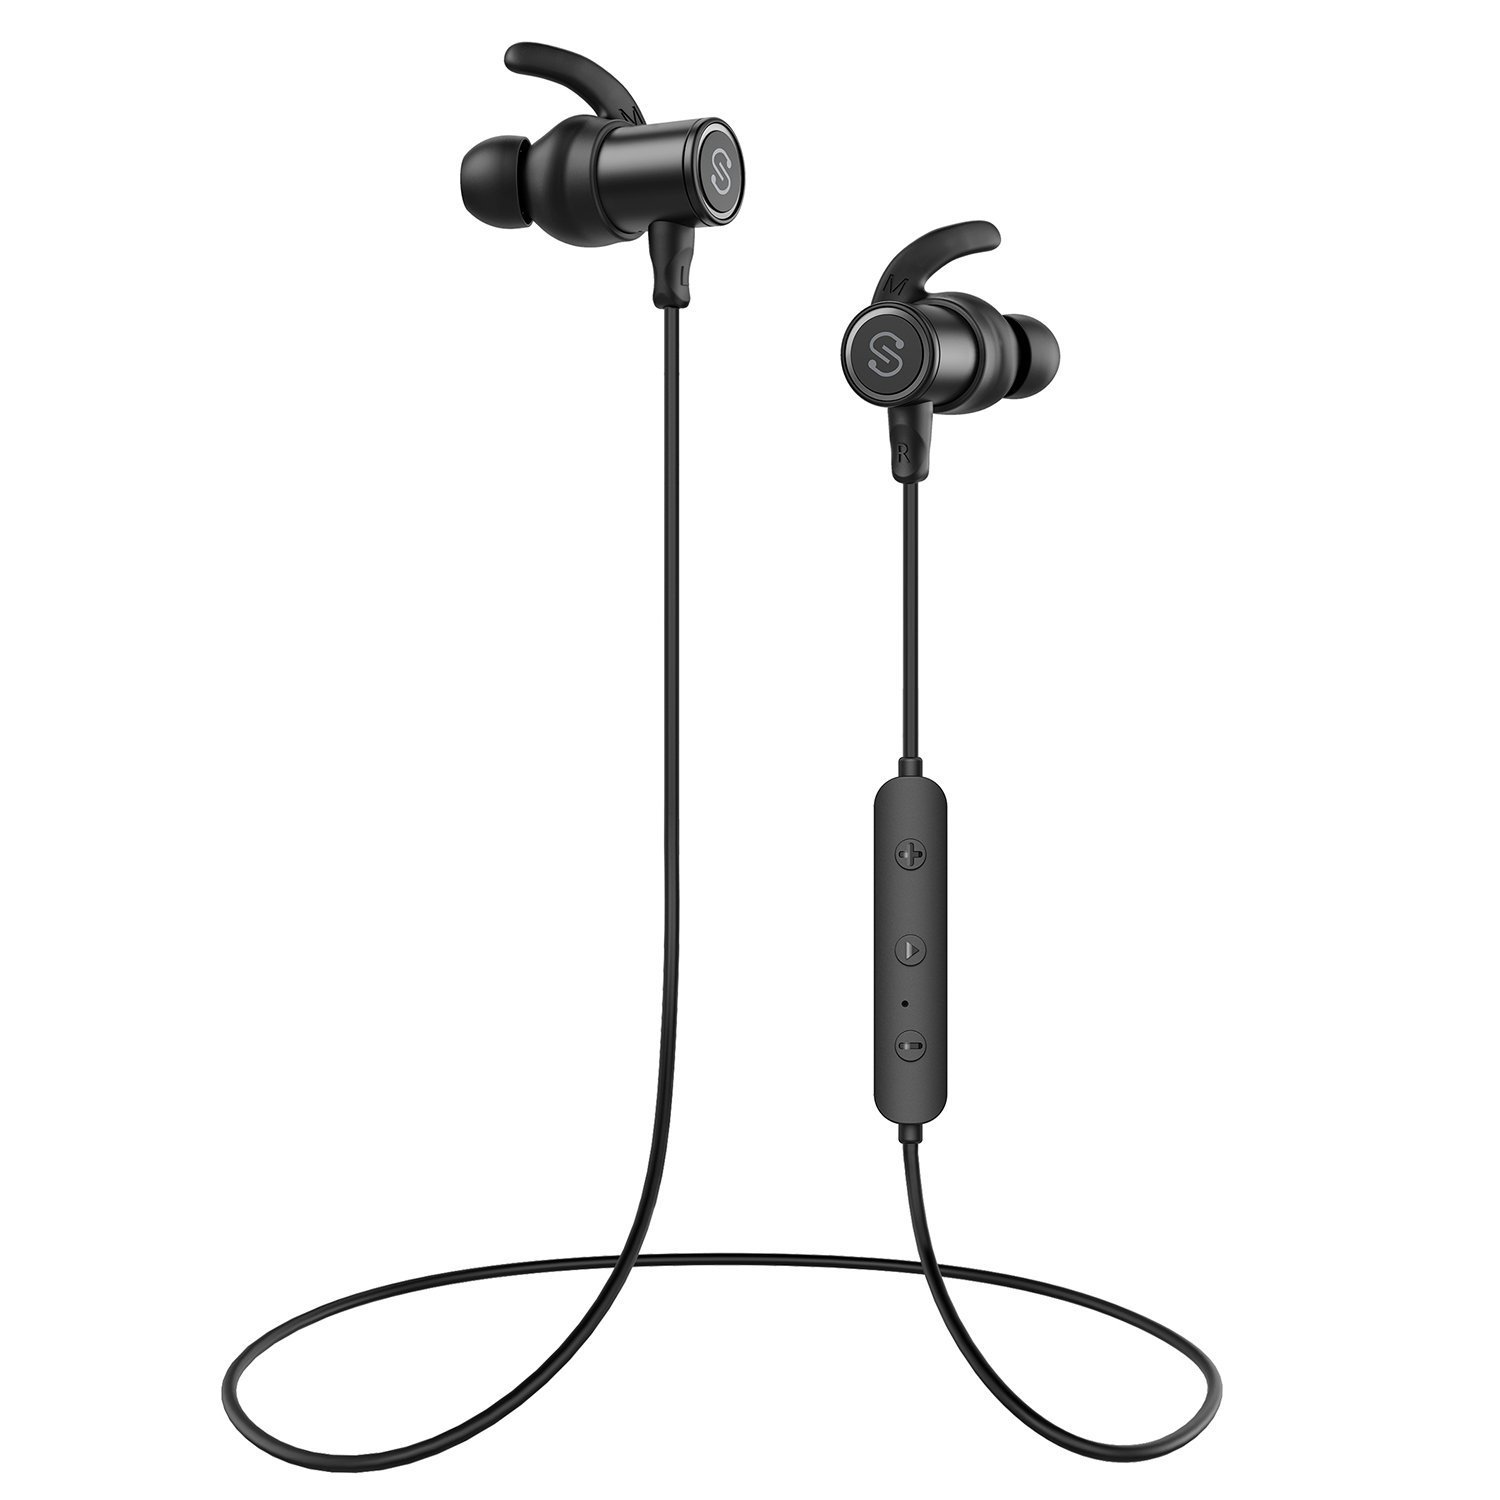 SoundPEATS Bluetooth Earphones, Wireless 4.1 Magnetic Headphones, In-Ear IPX6 Sweatproof Earbuds With Mic (Super Sound With 10MM Drivers And APTX, 8 Hours Working Time, Secure Fit Design)-Black